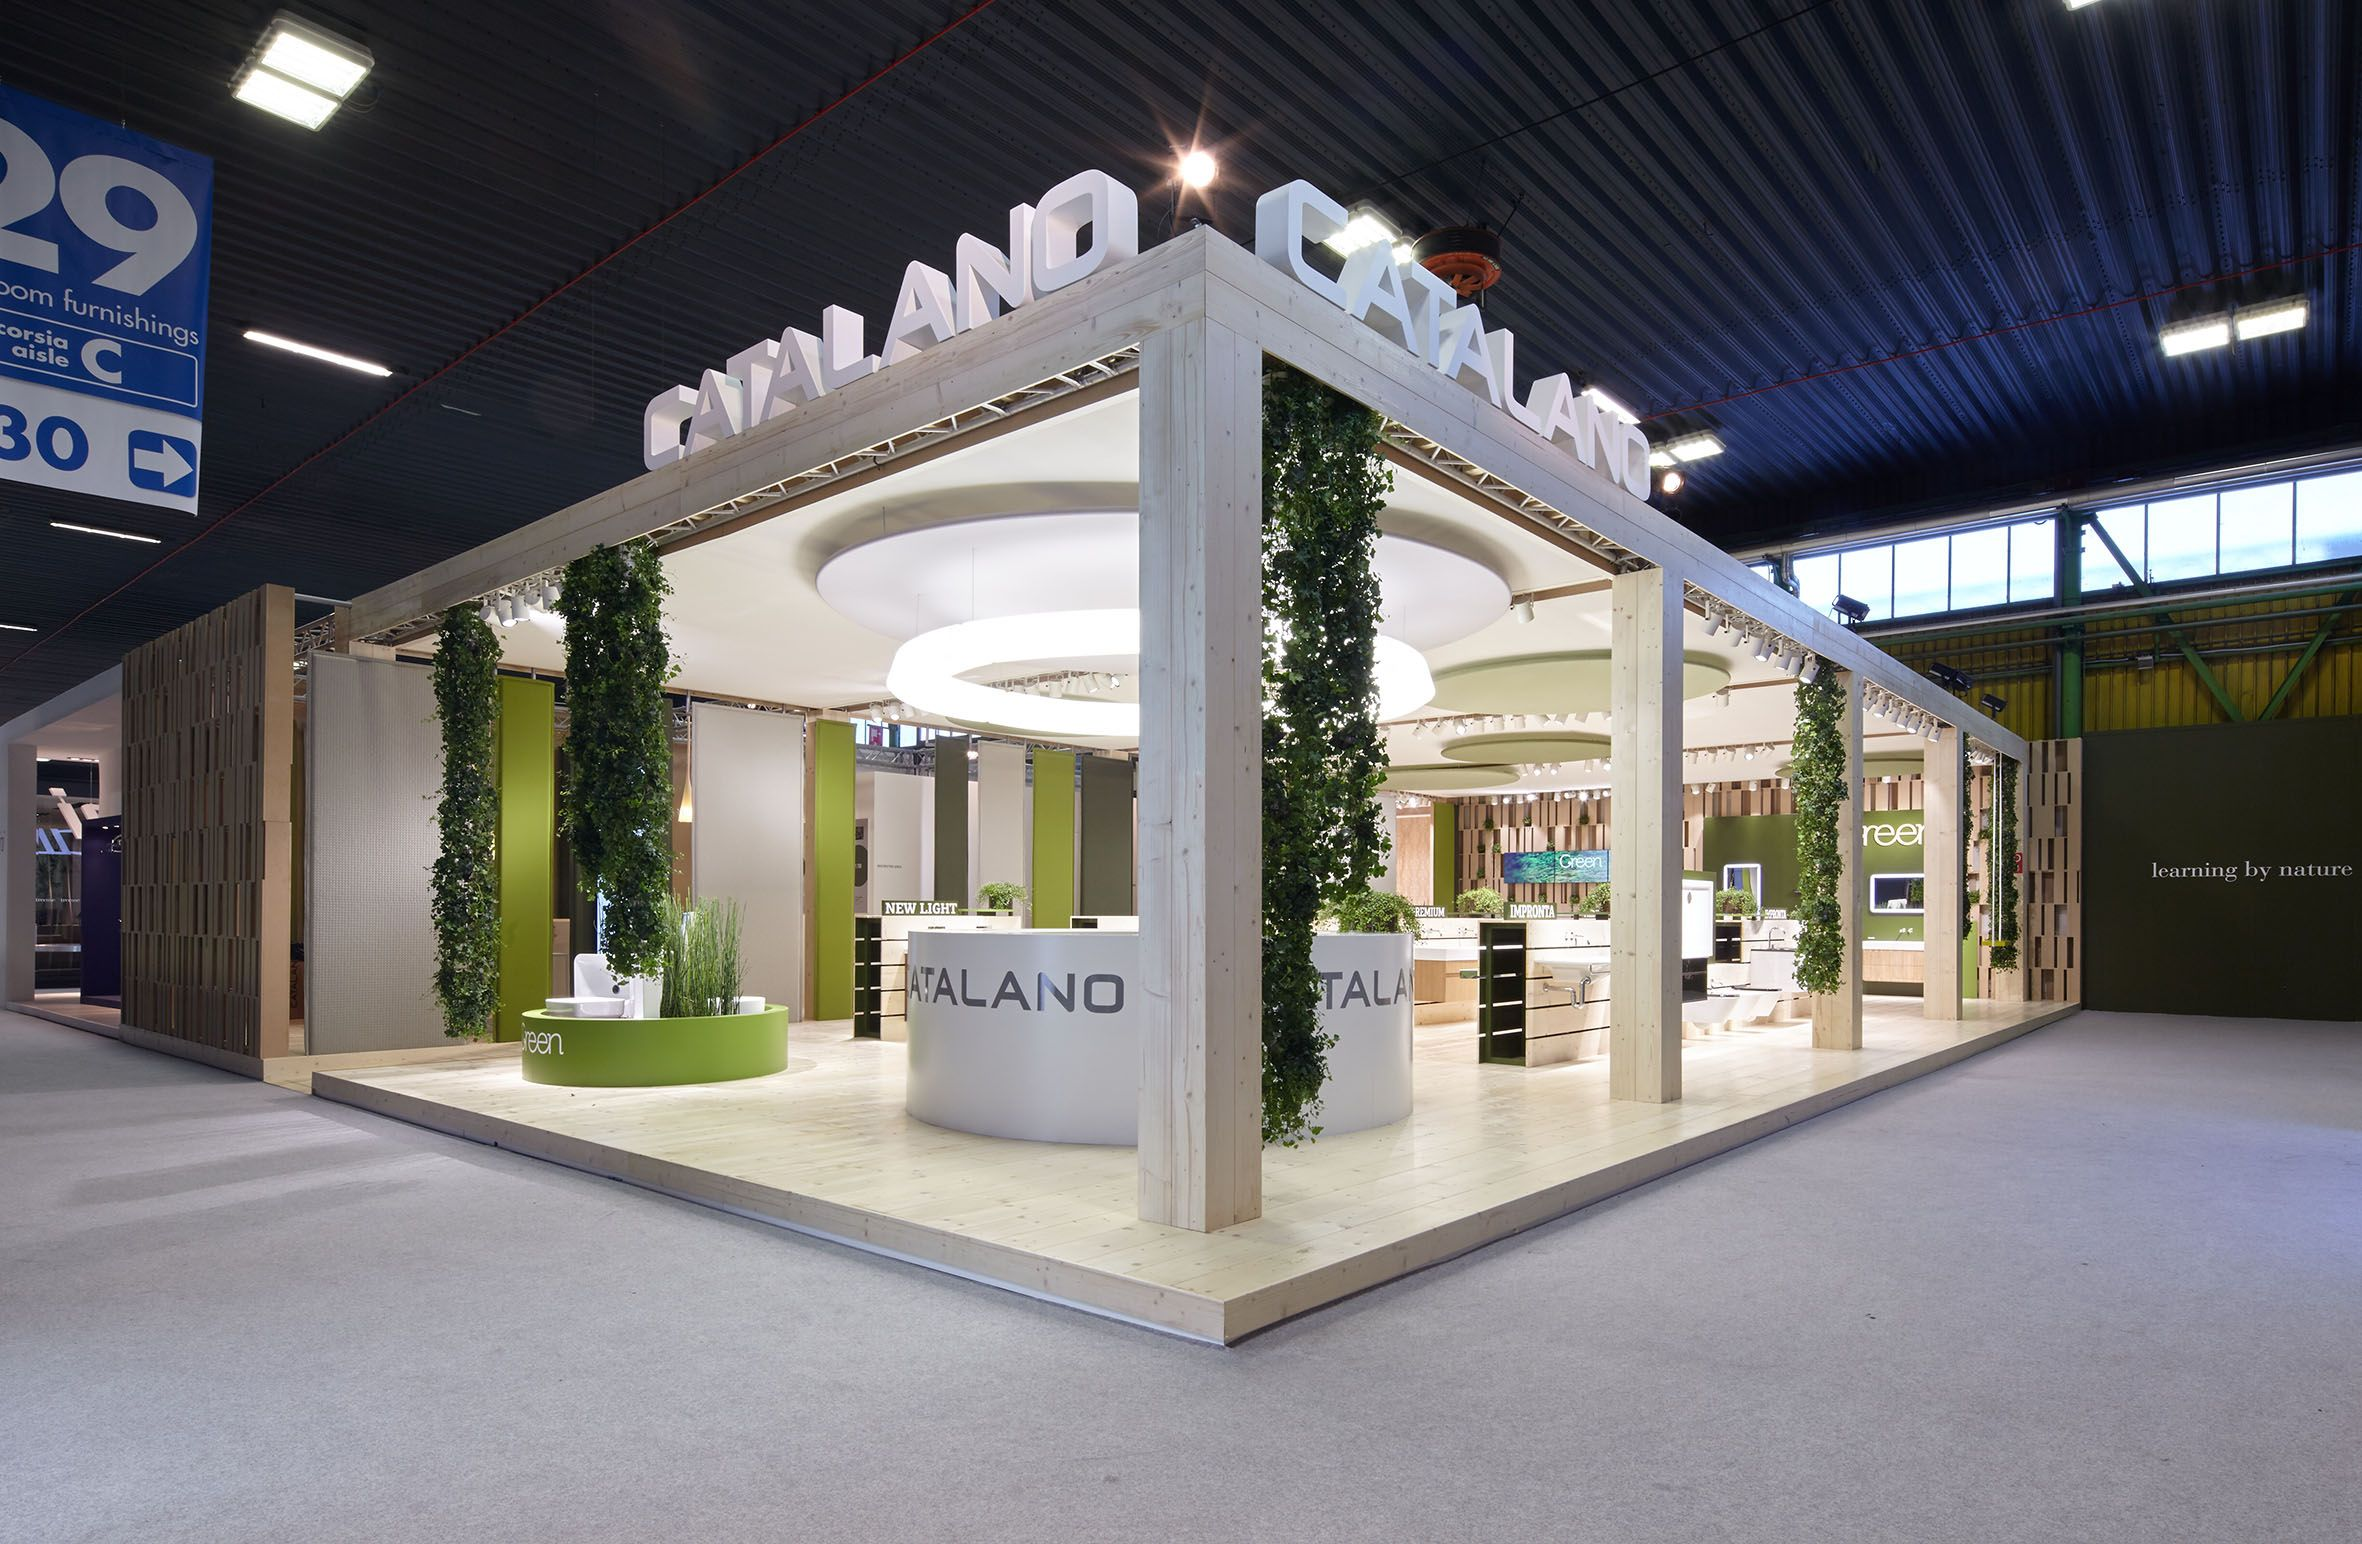 Catalano mobili ~ Stand catalano cersaie exihibition stands ideas